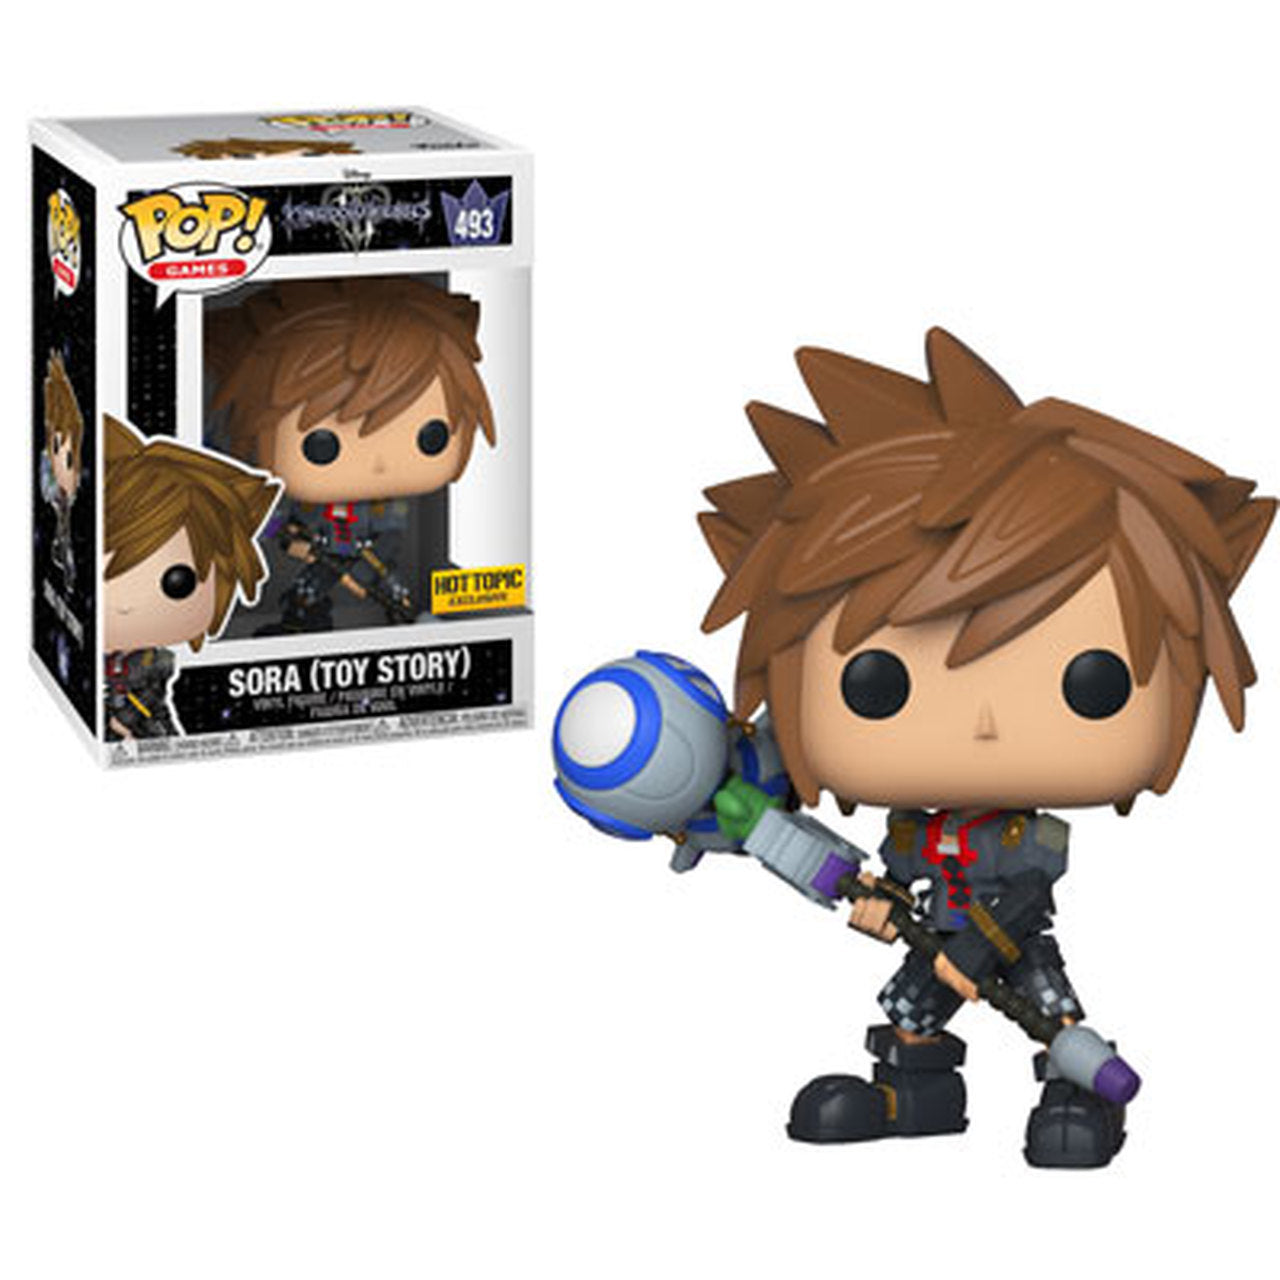 Kingdom Hearts 3 - Sora Toy Story Form Exclusive Funko POP!